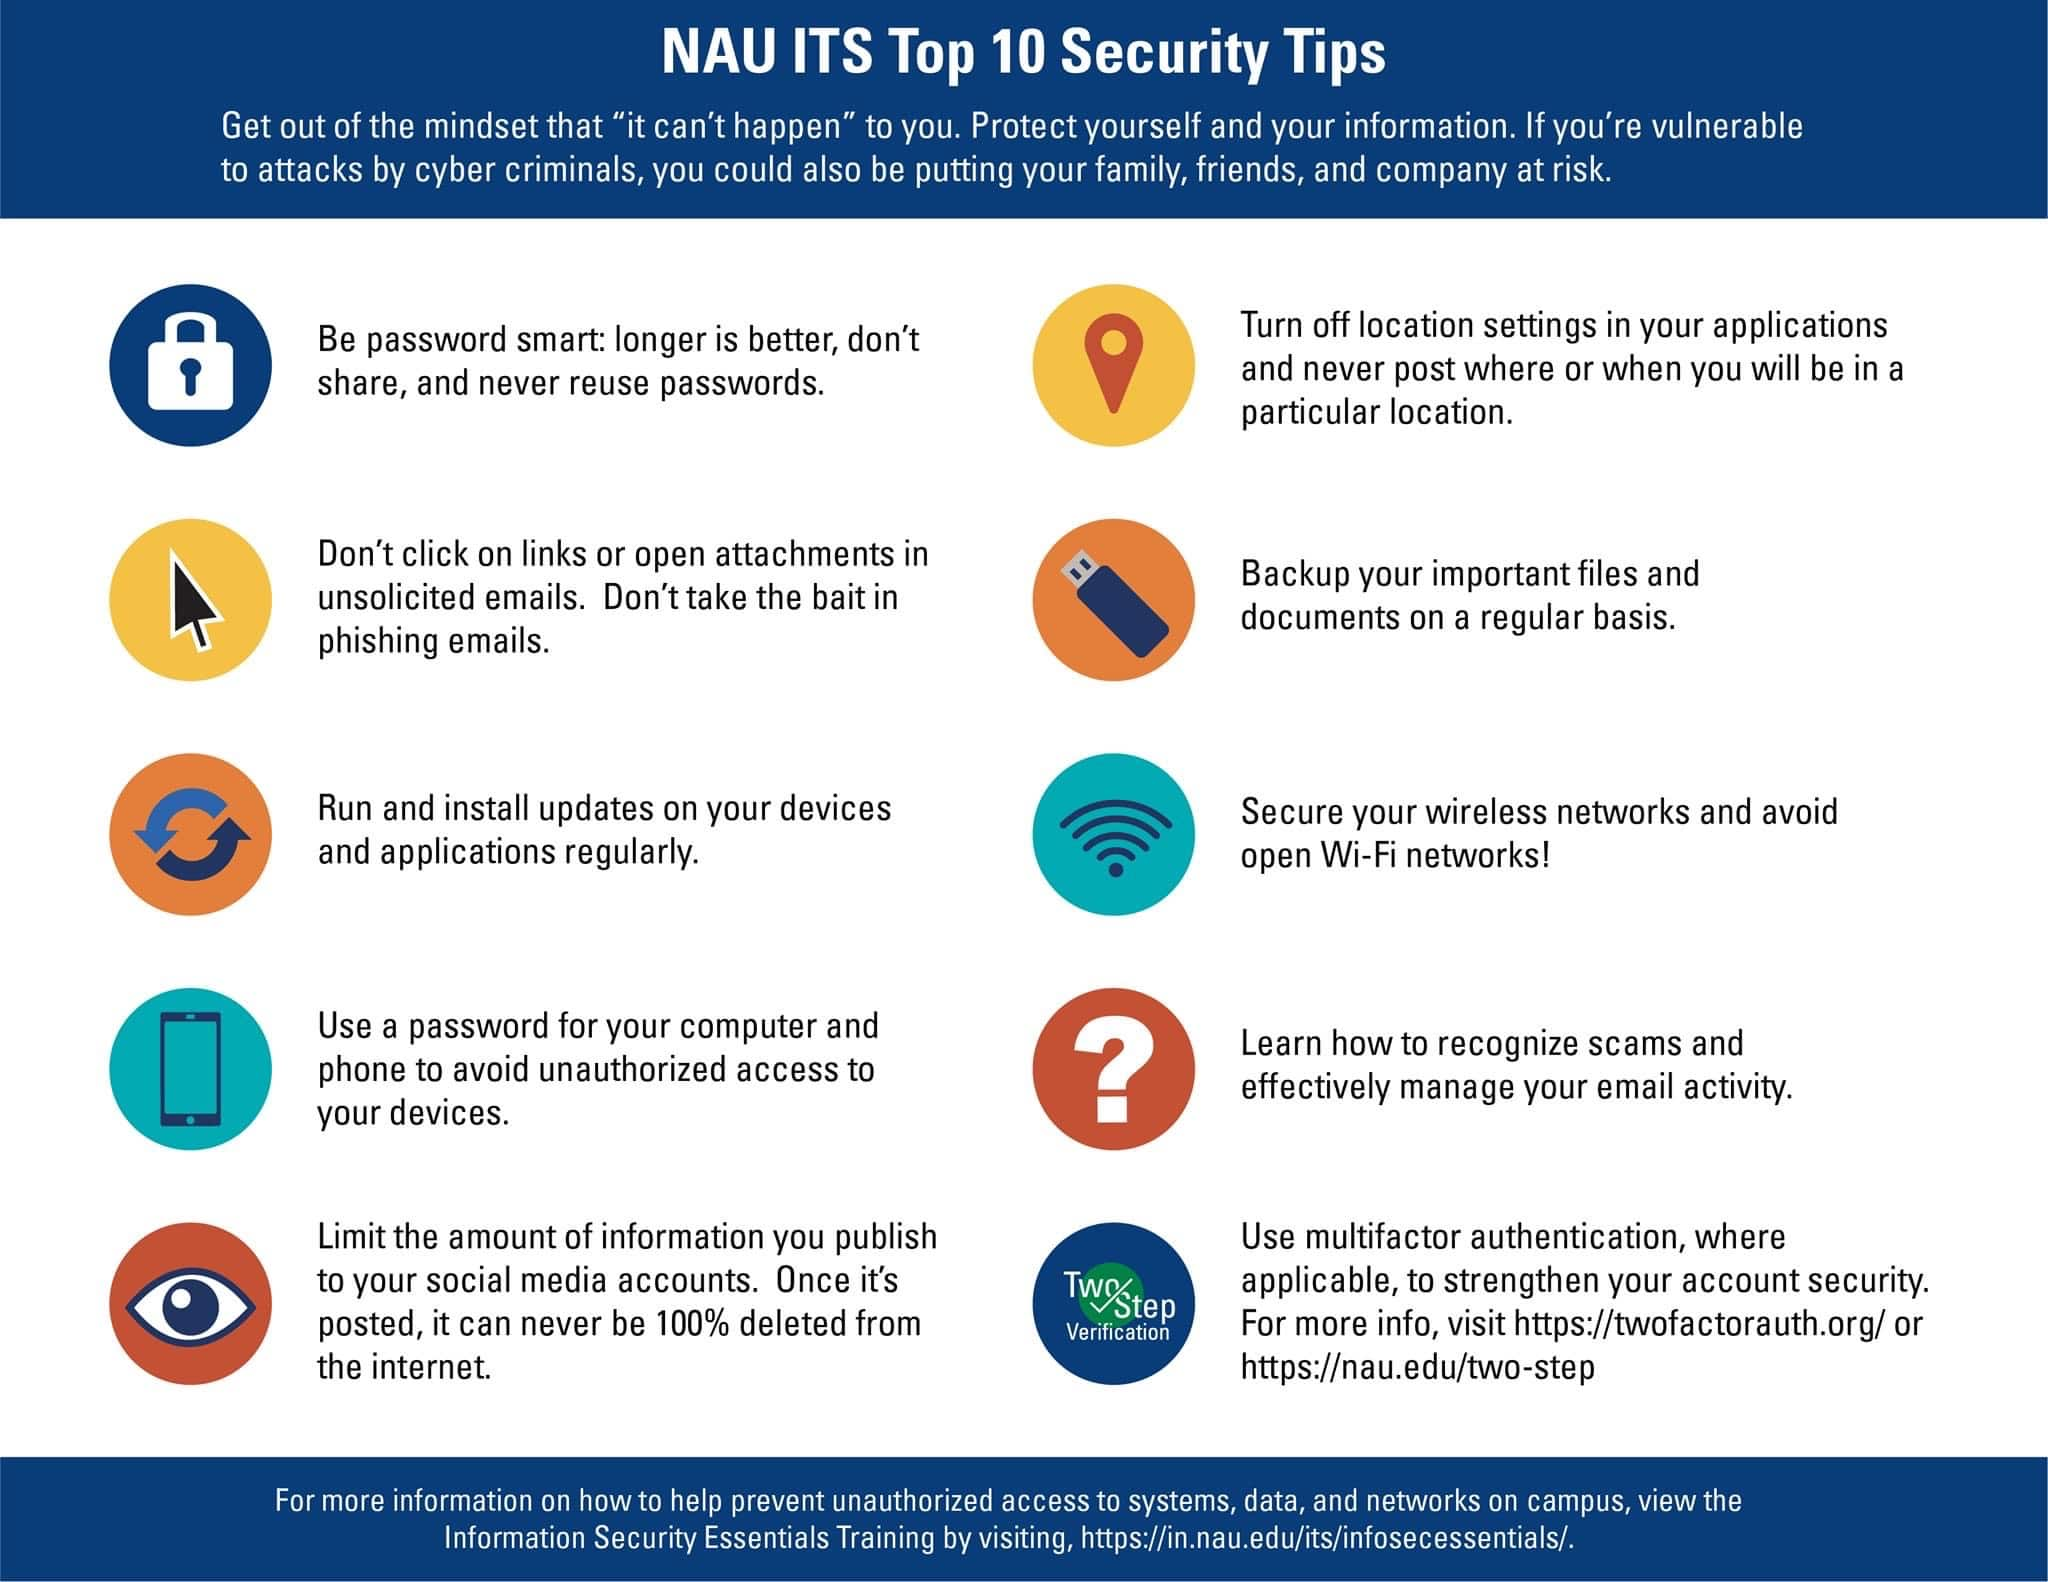 10 security tips infographic for phishing attacks